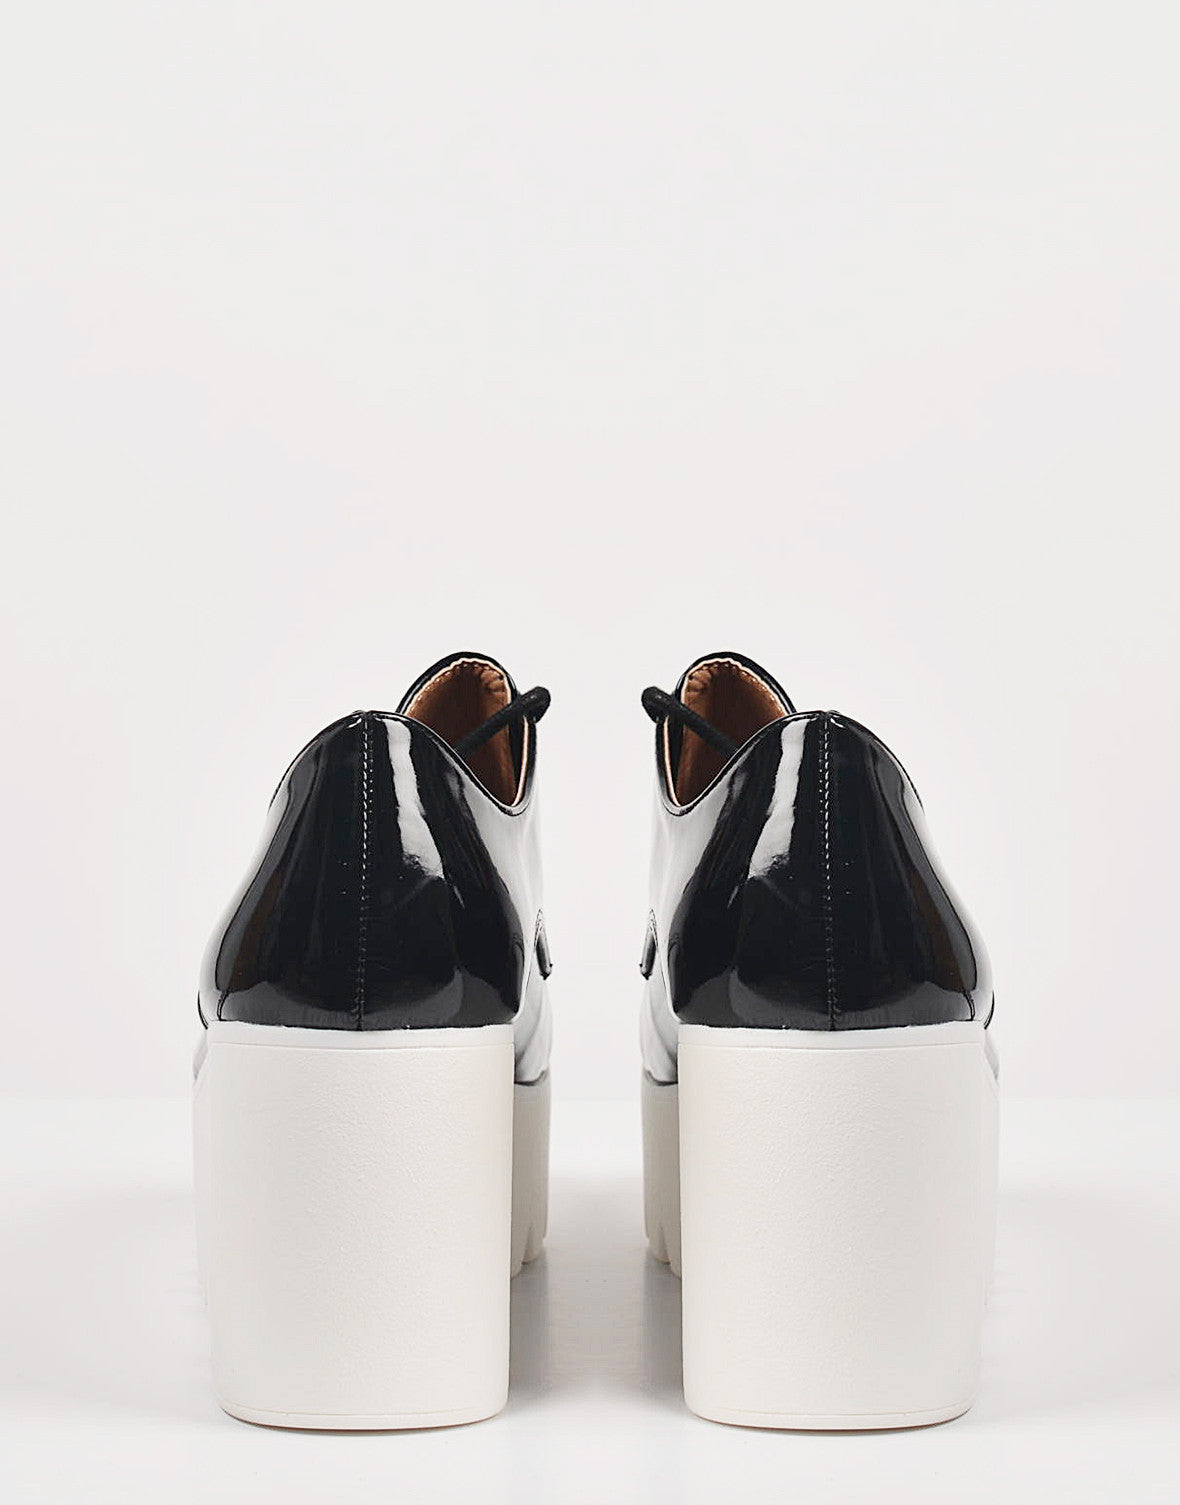 Back View of Patent Laced Up Flatform Oxfords